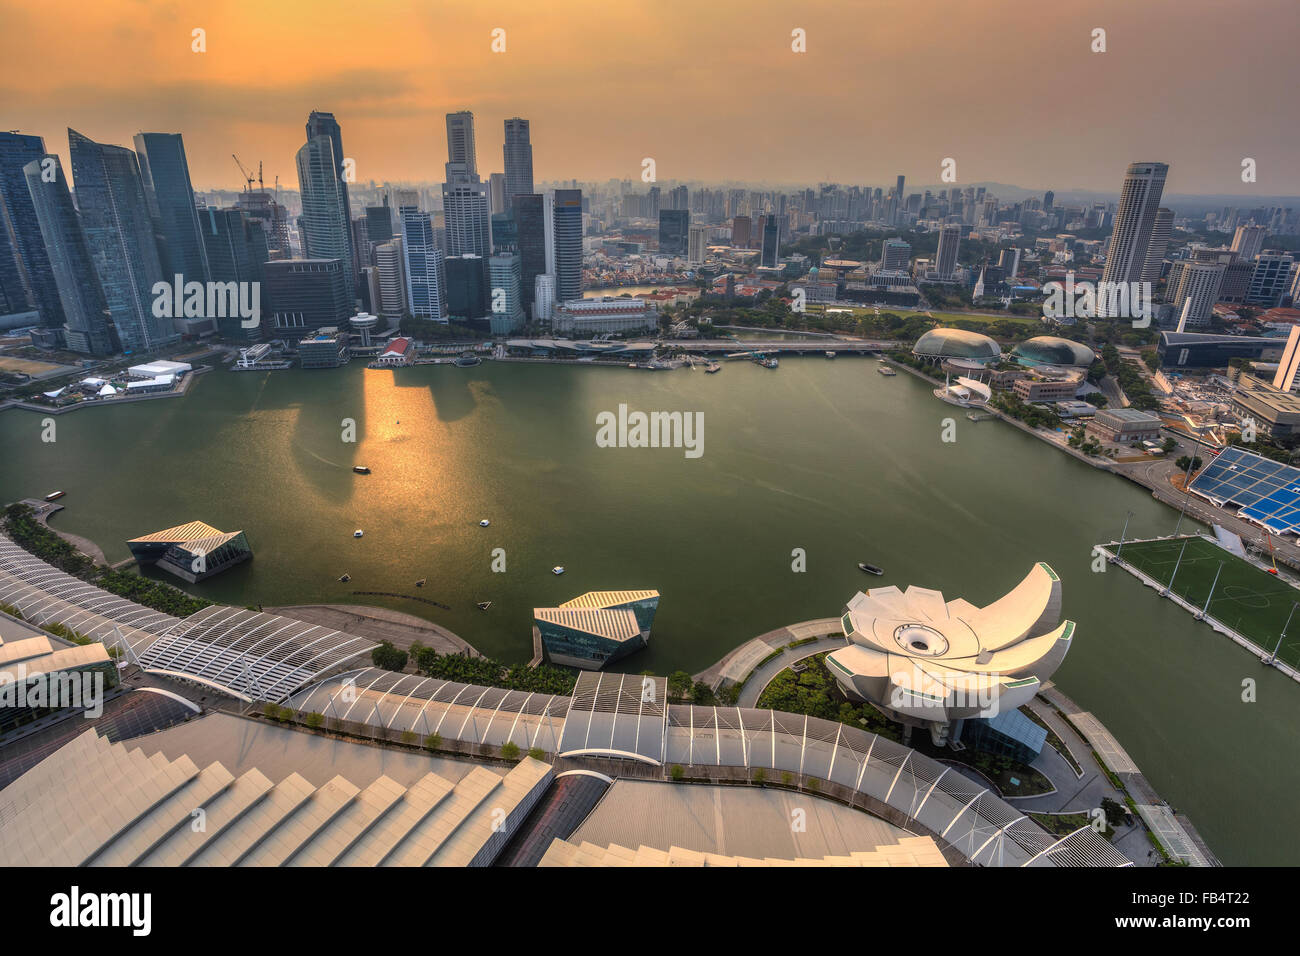 sunset at Singapore City Skyline view at Marina Bay - Stock Image